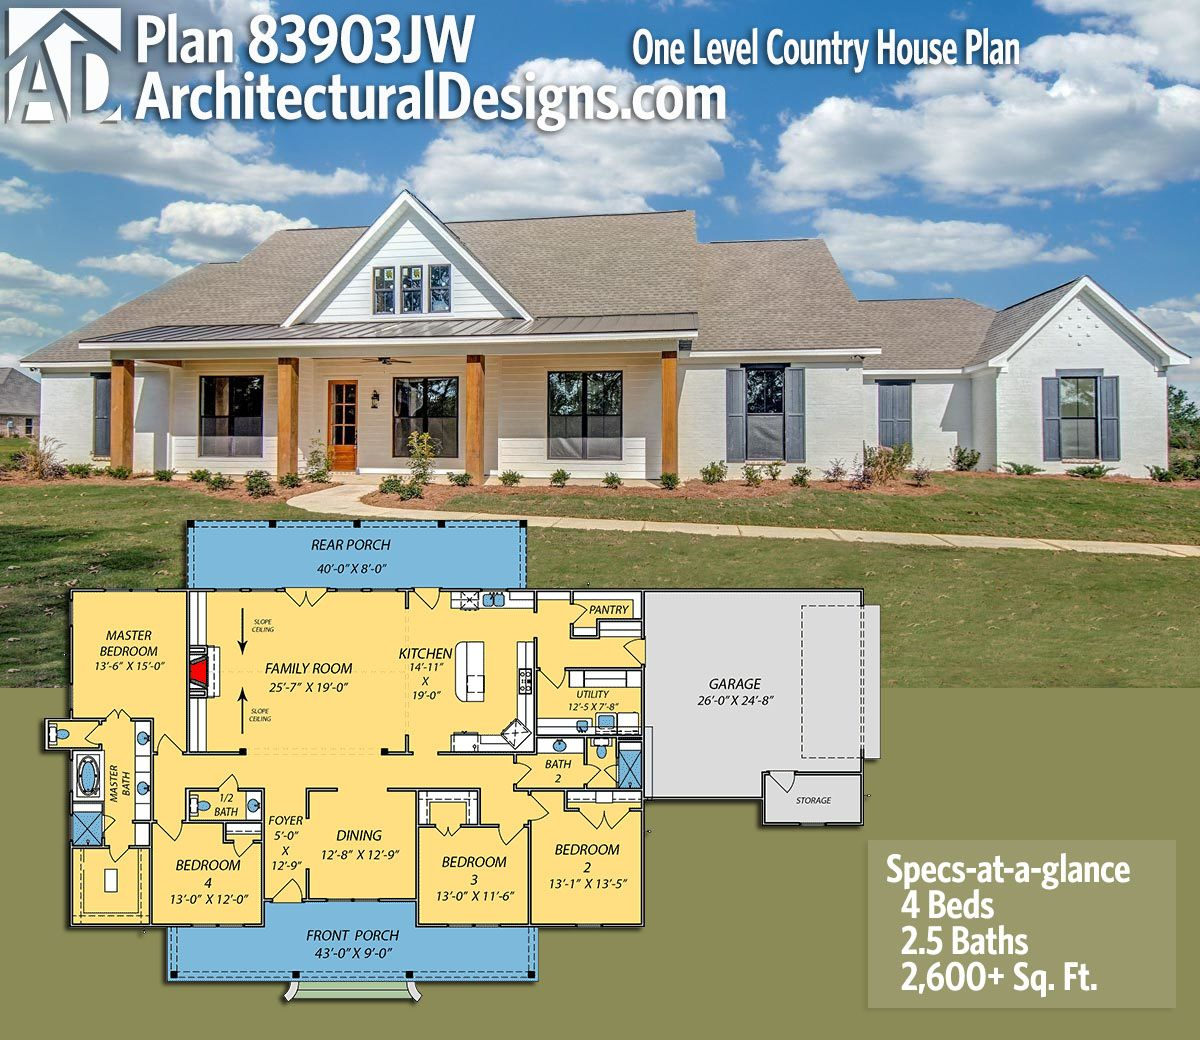 Plan 83903jw one level country house plan architectural for Farmhouse plans with pictures